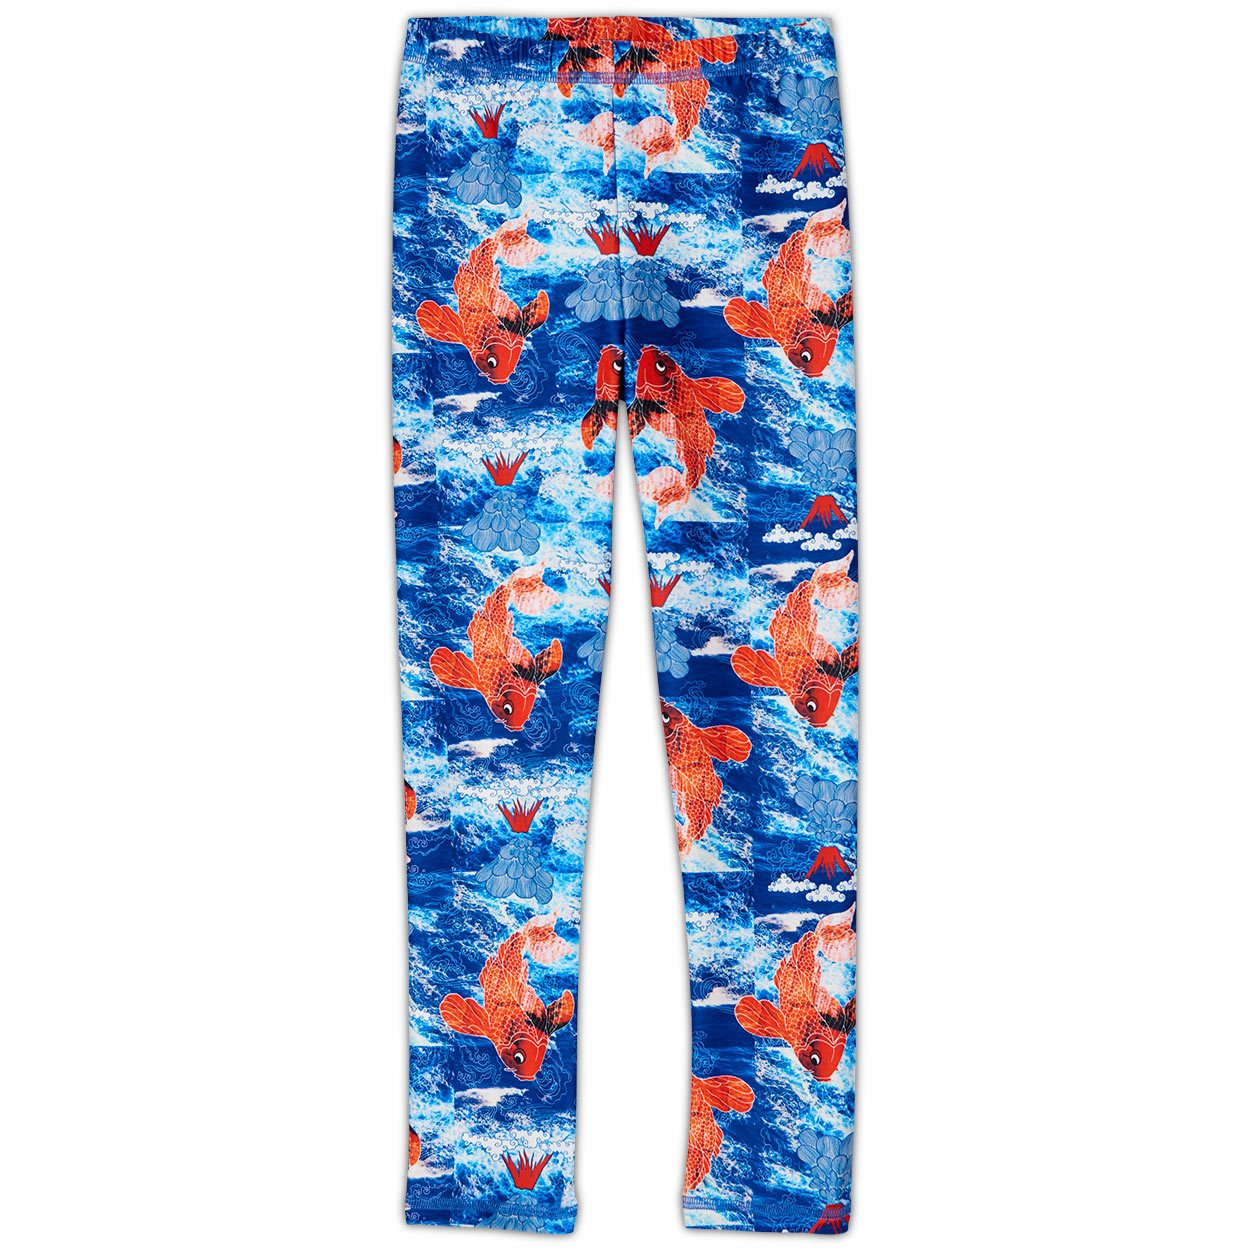 Koi Fish Sunblocker Leggings UPF 50+